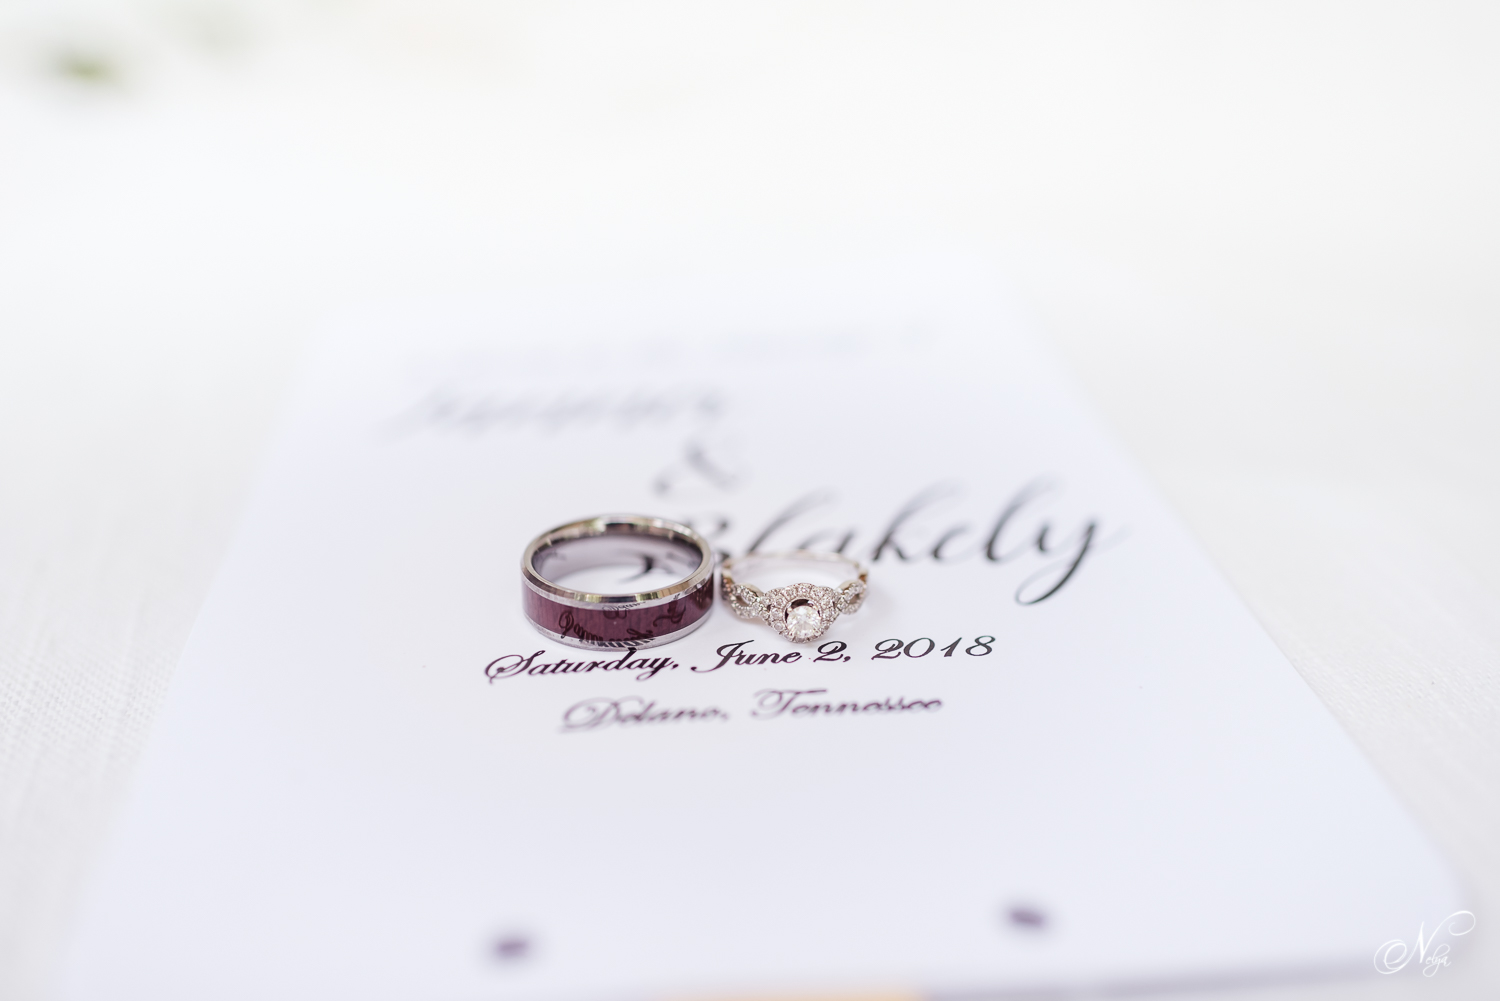 wedding rings sitting on a white invitation